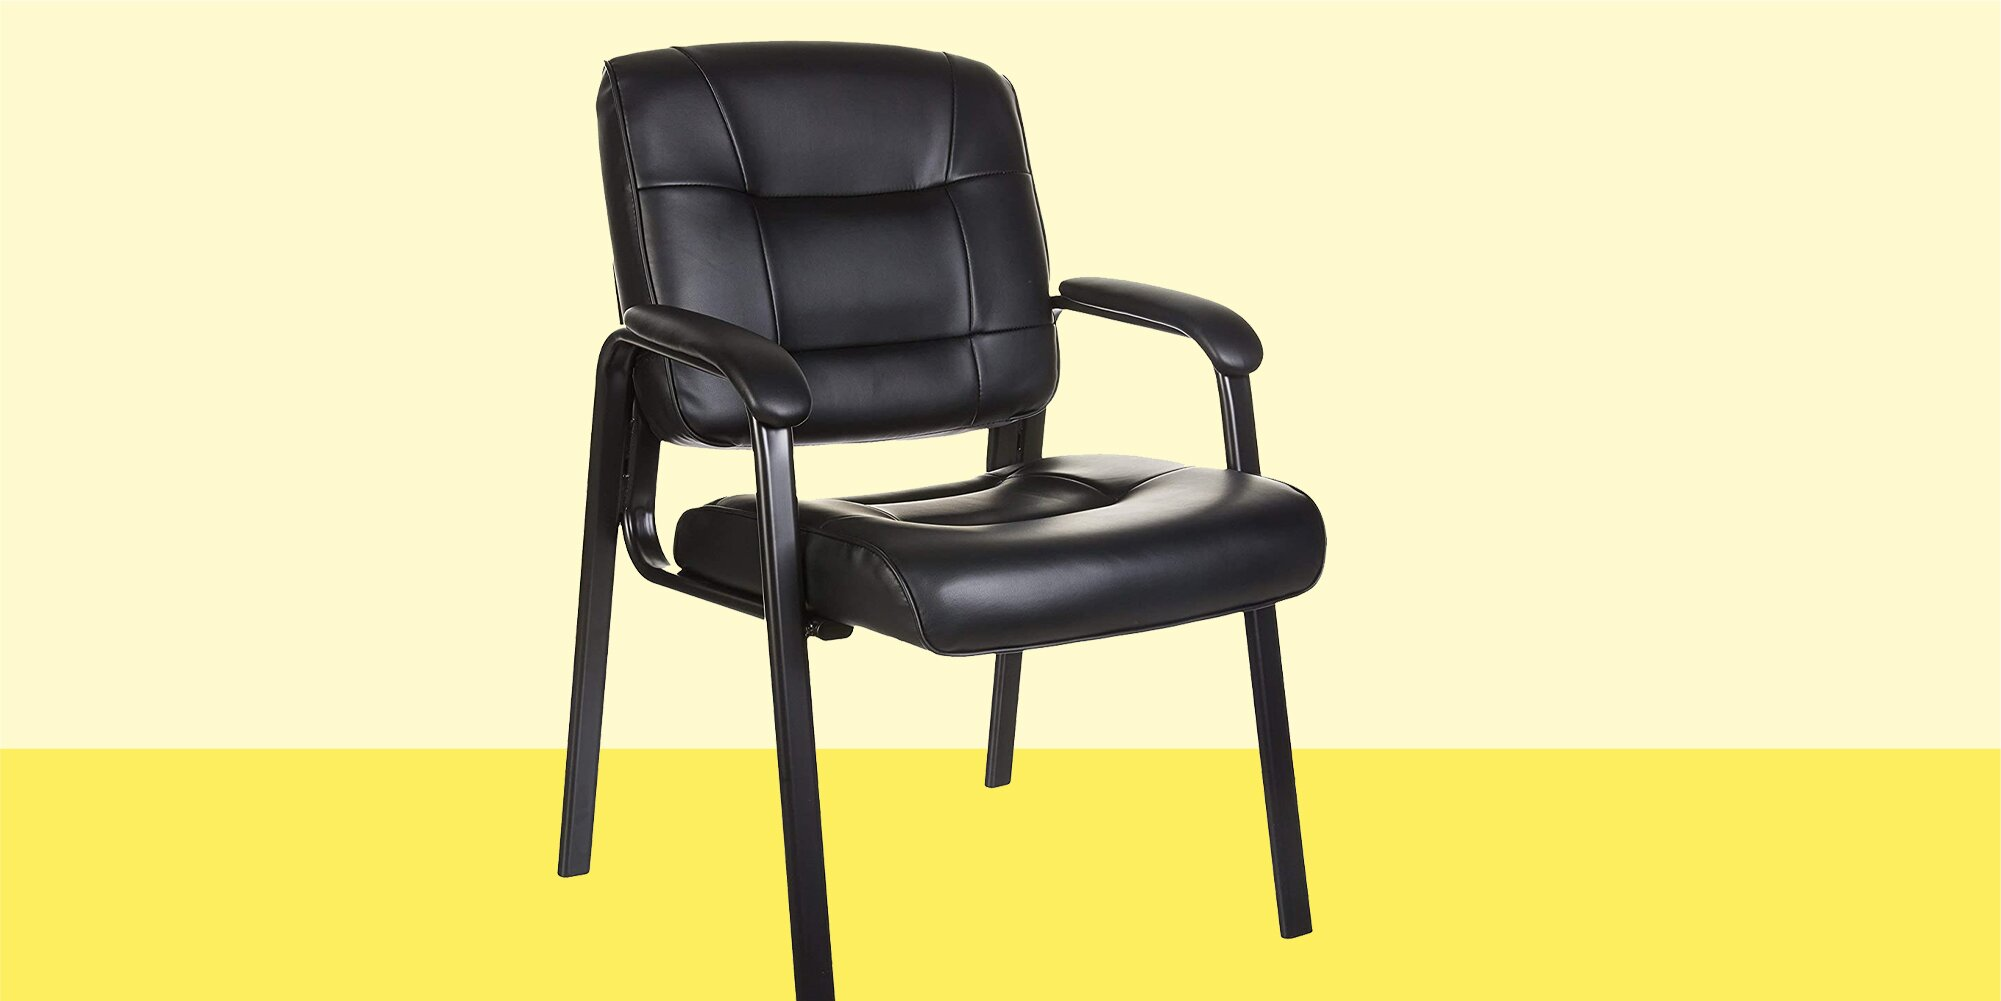 This Unexpected Chair From Amazon Made My Back Pain Disappear